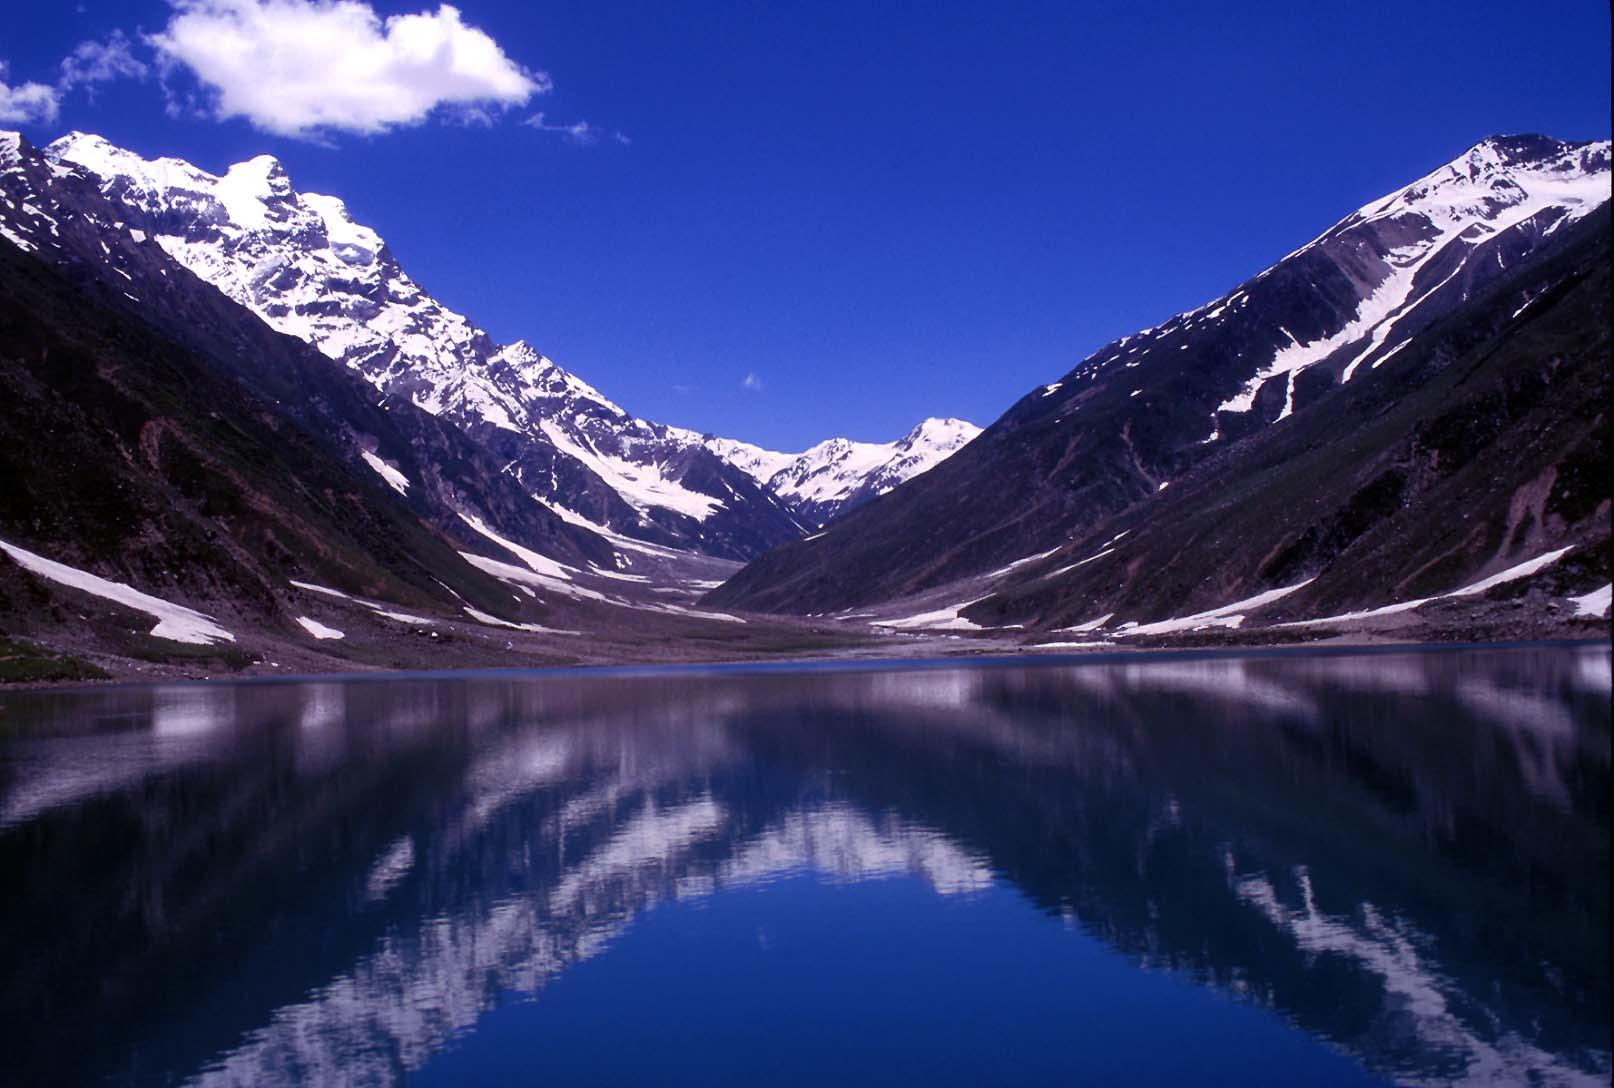 famous lake saifulmaluk is situated in the norther hameed mueen ud din